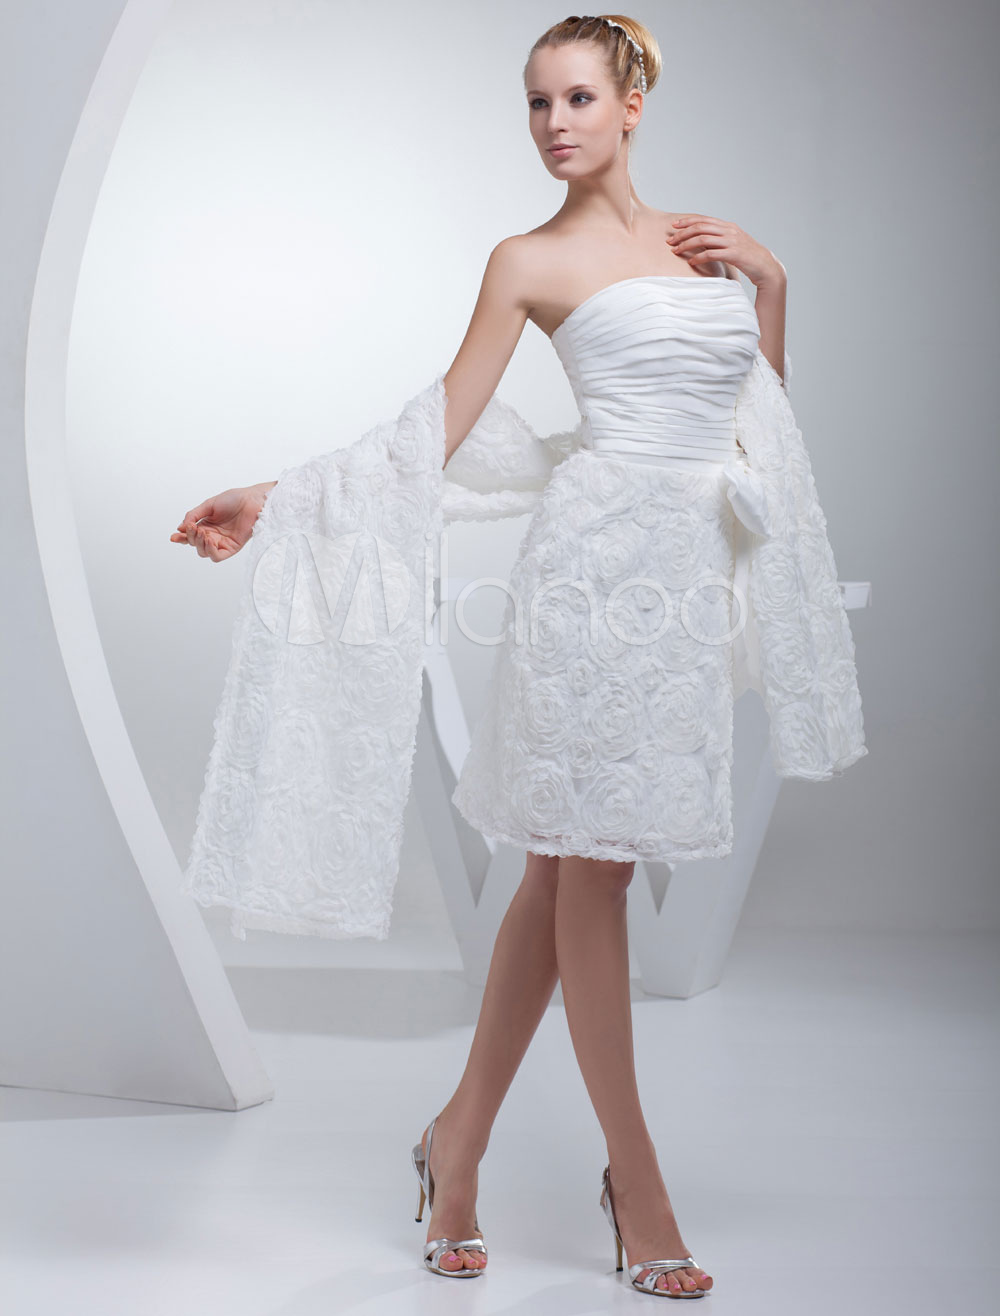 Milanoo / Reception Wedding Dress Strapless Pleated Sash Bow Lace Flower Short Length Sheath Bridal Dress